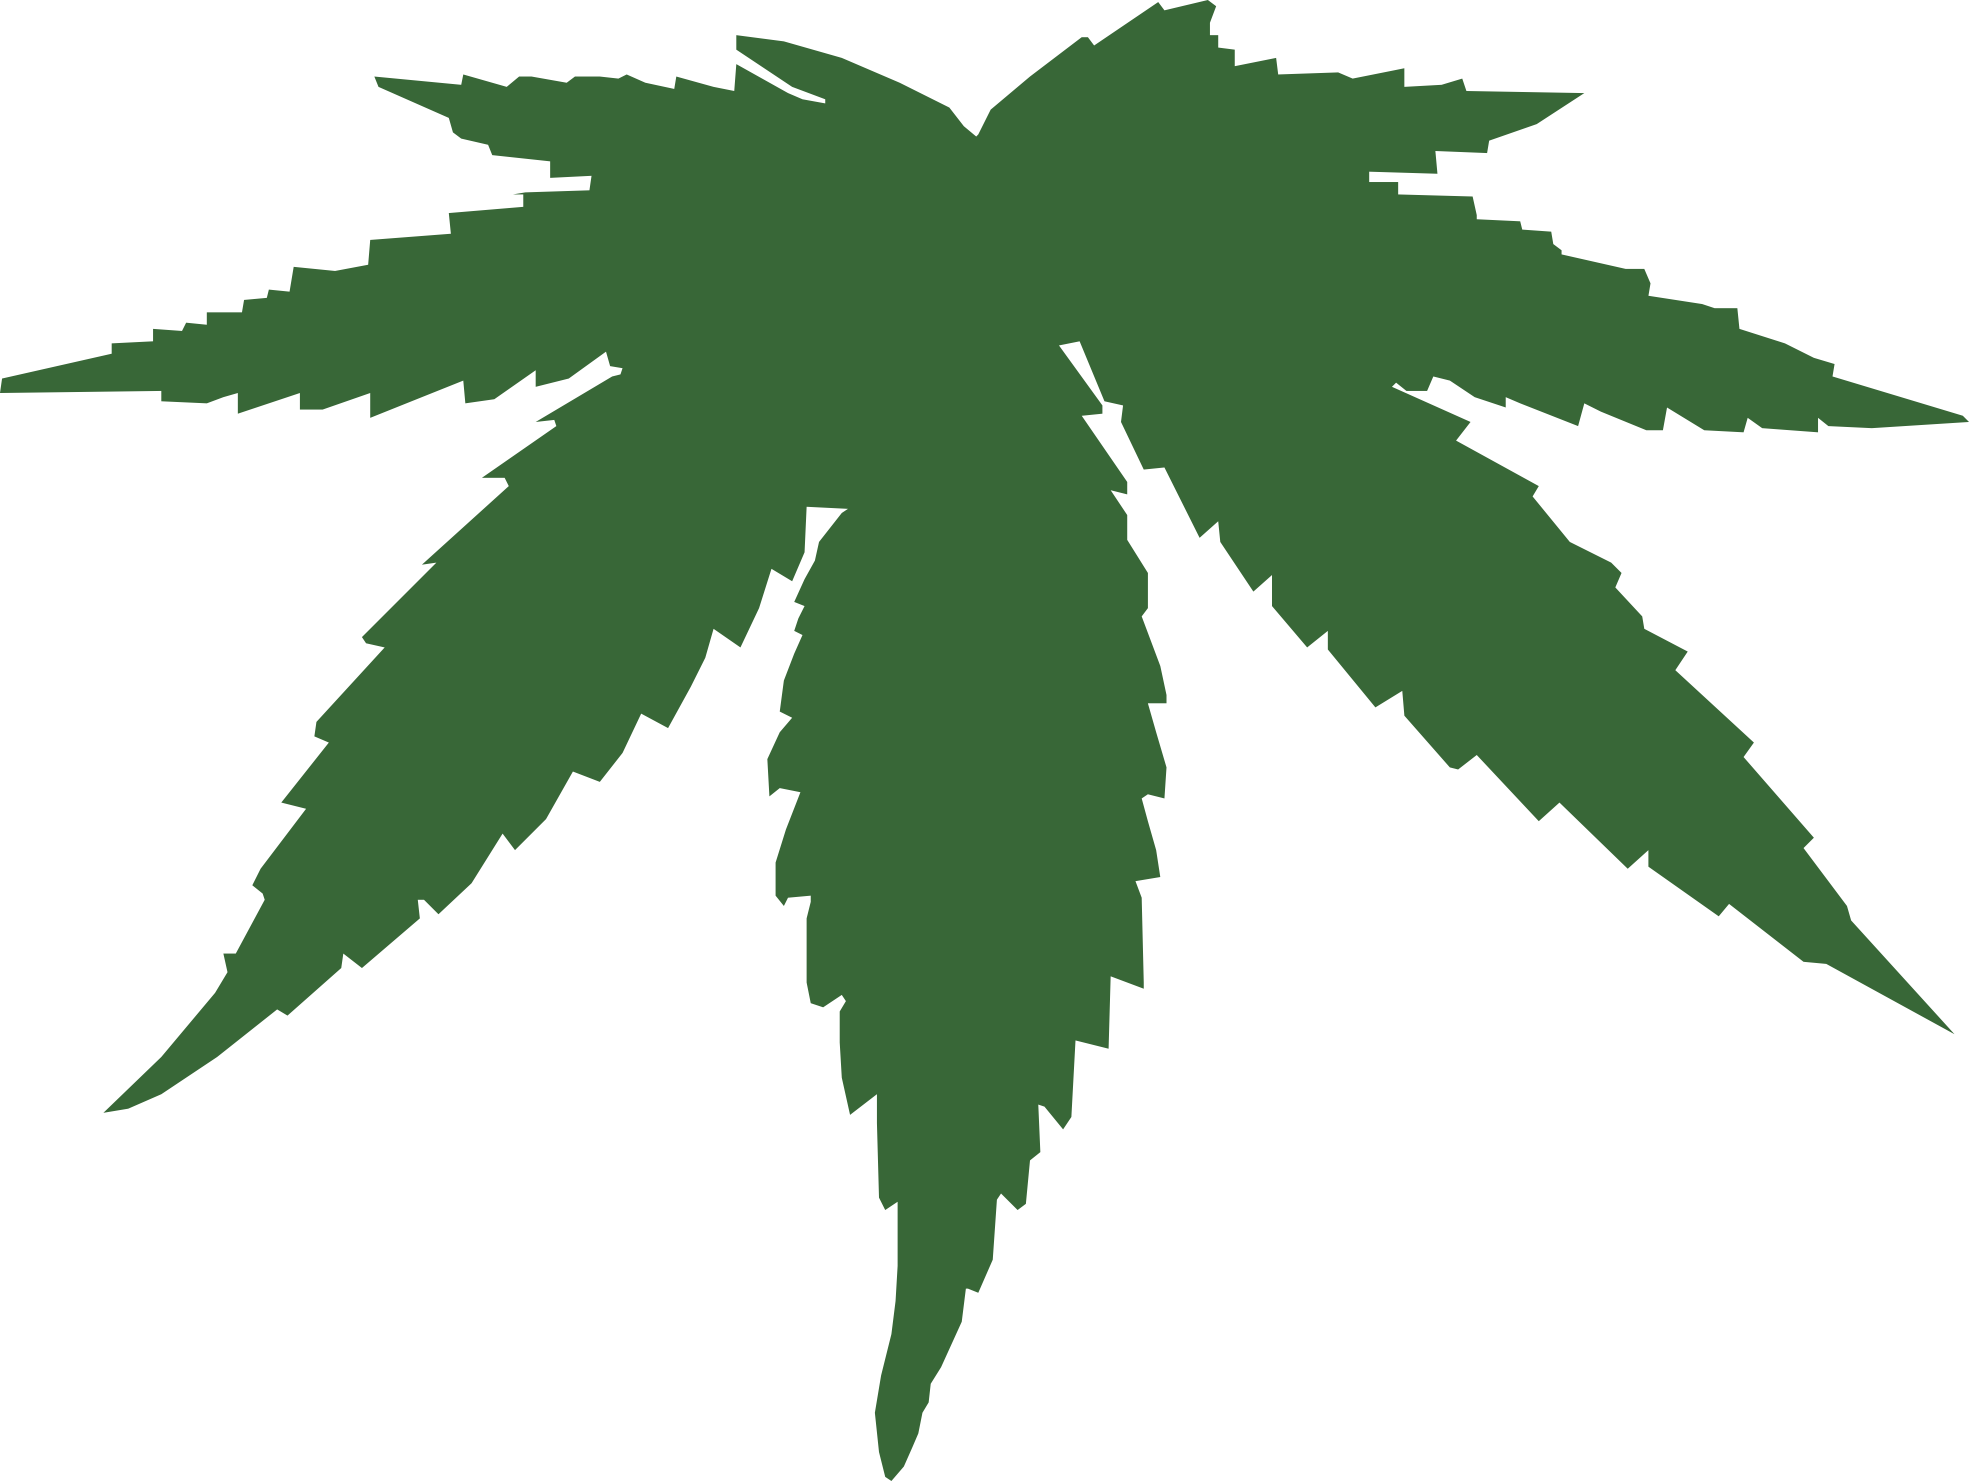 Black Weed Leaf Clip Art | Clipart Panda - Free Clipart Images svg freeuse library